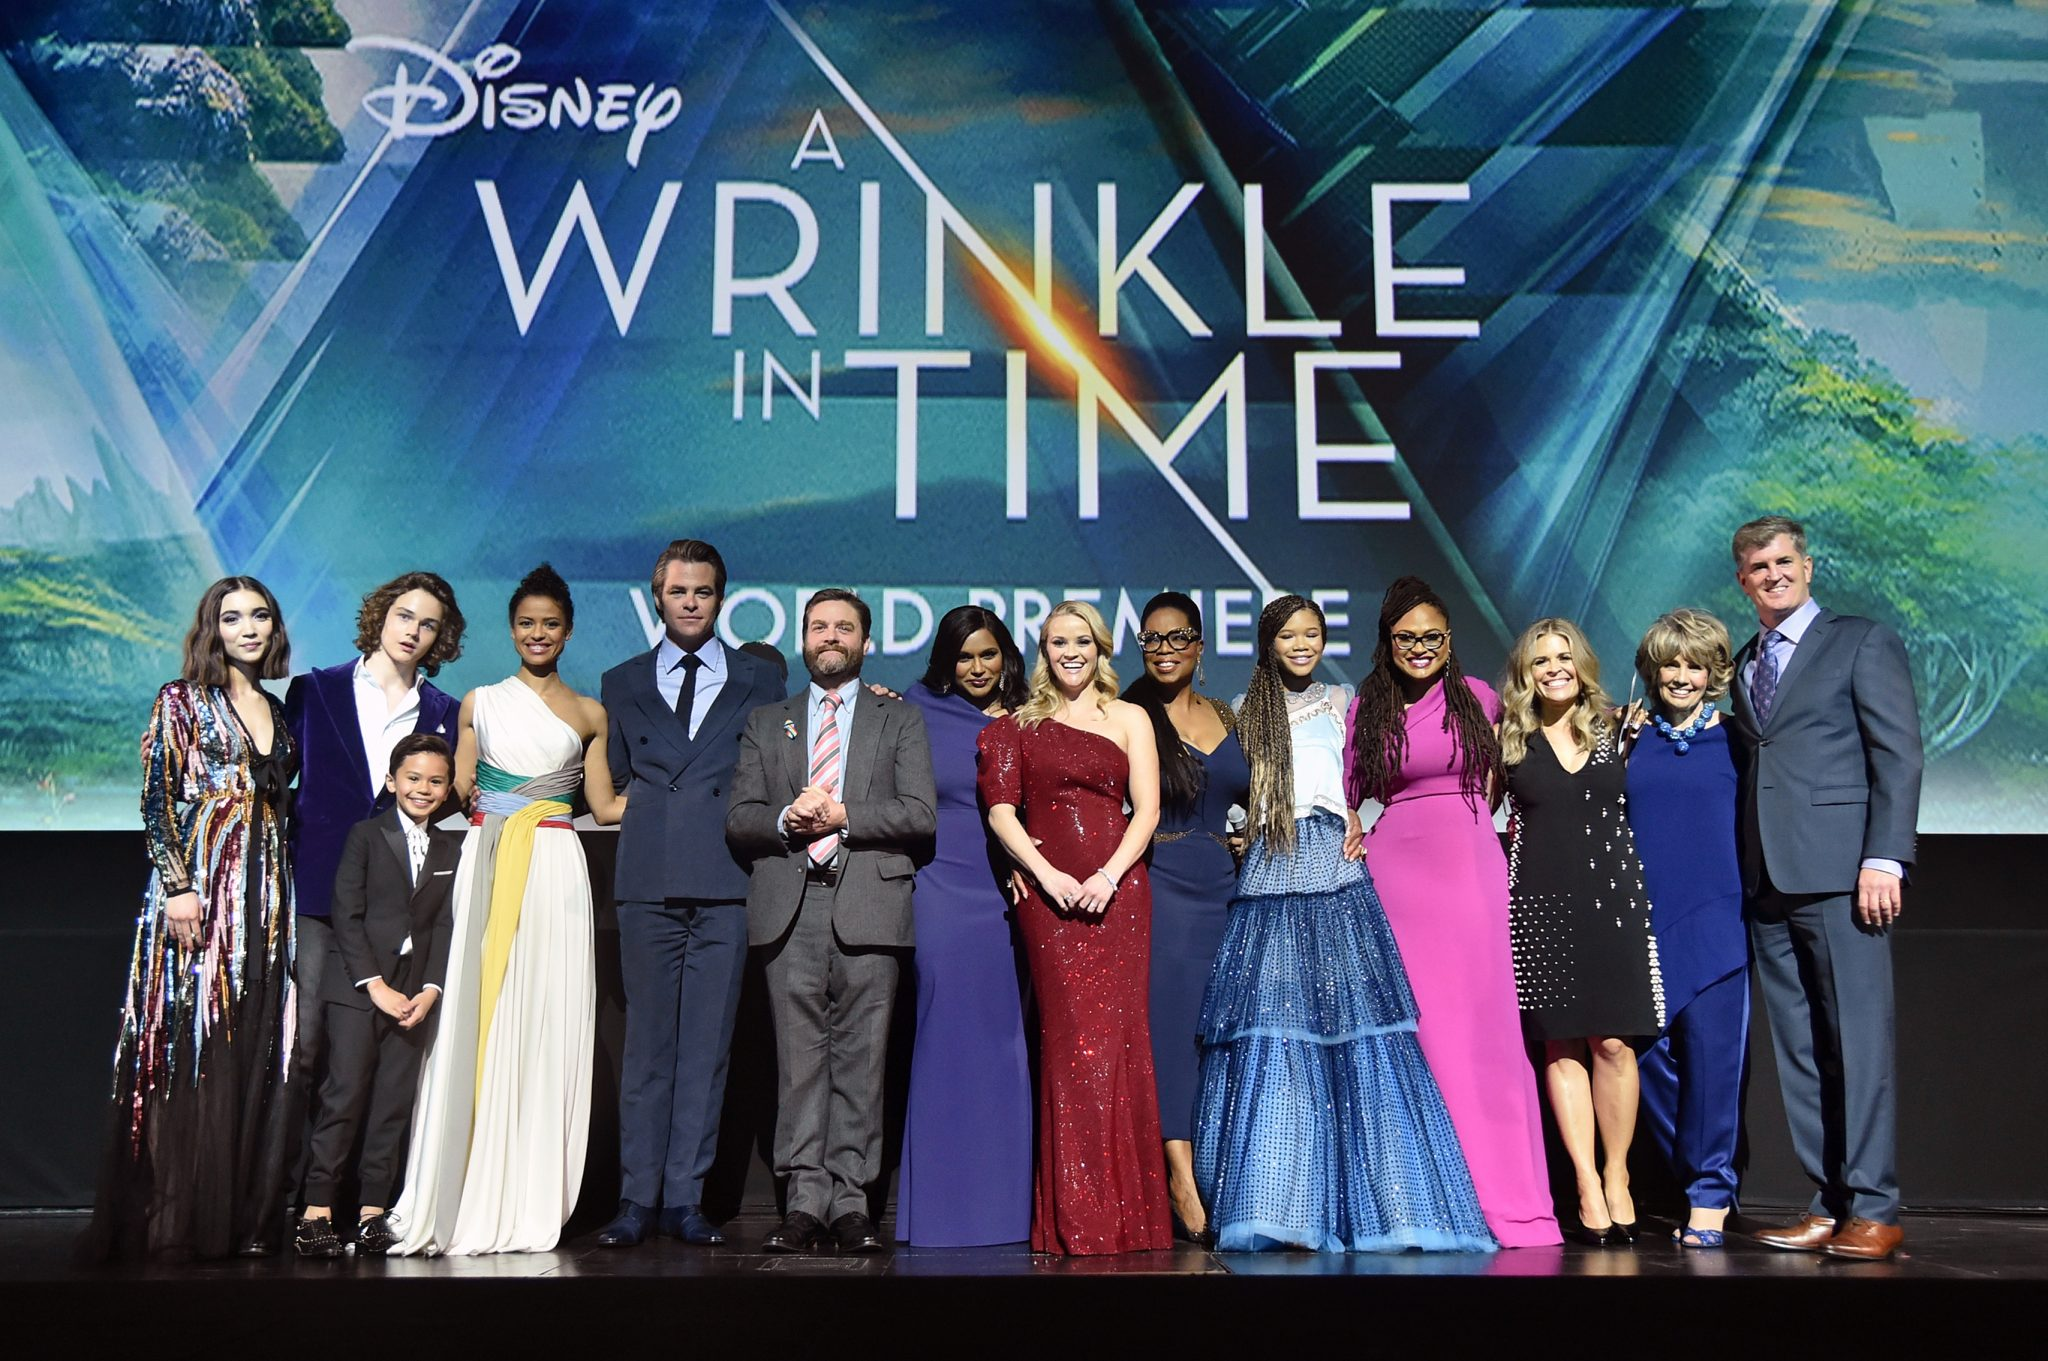 Disney's A Wrinkle In Time World Premiere